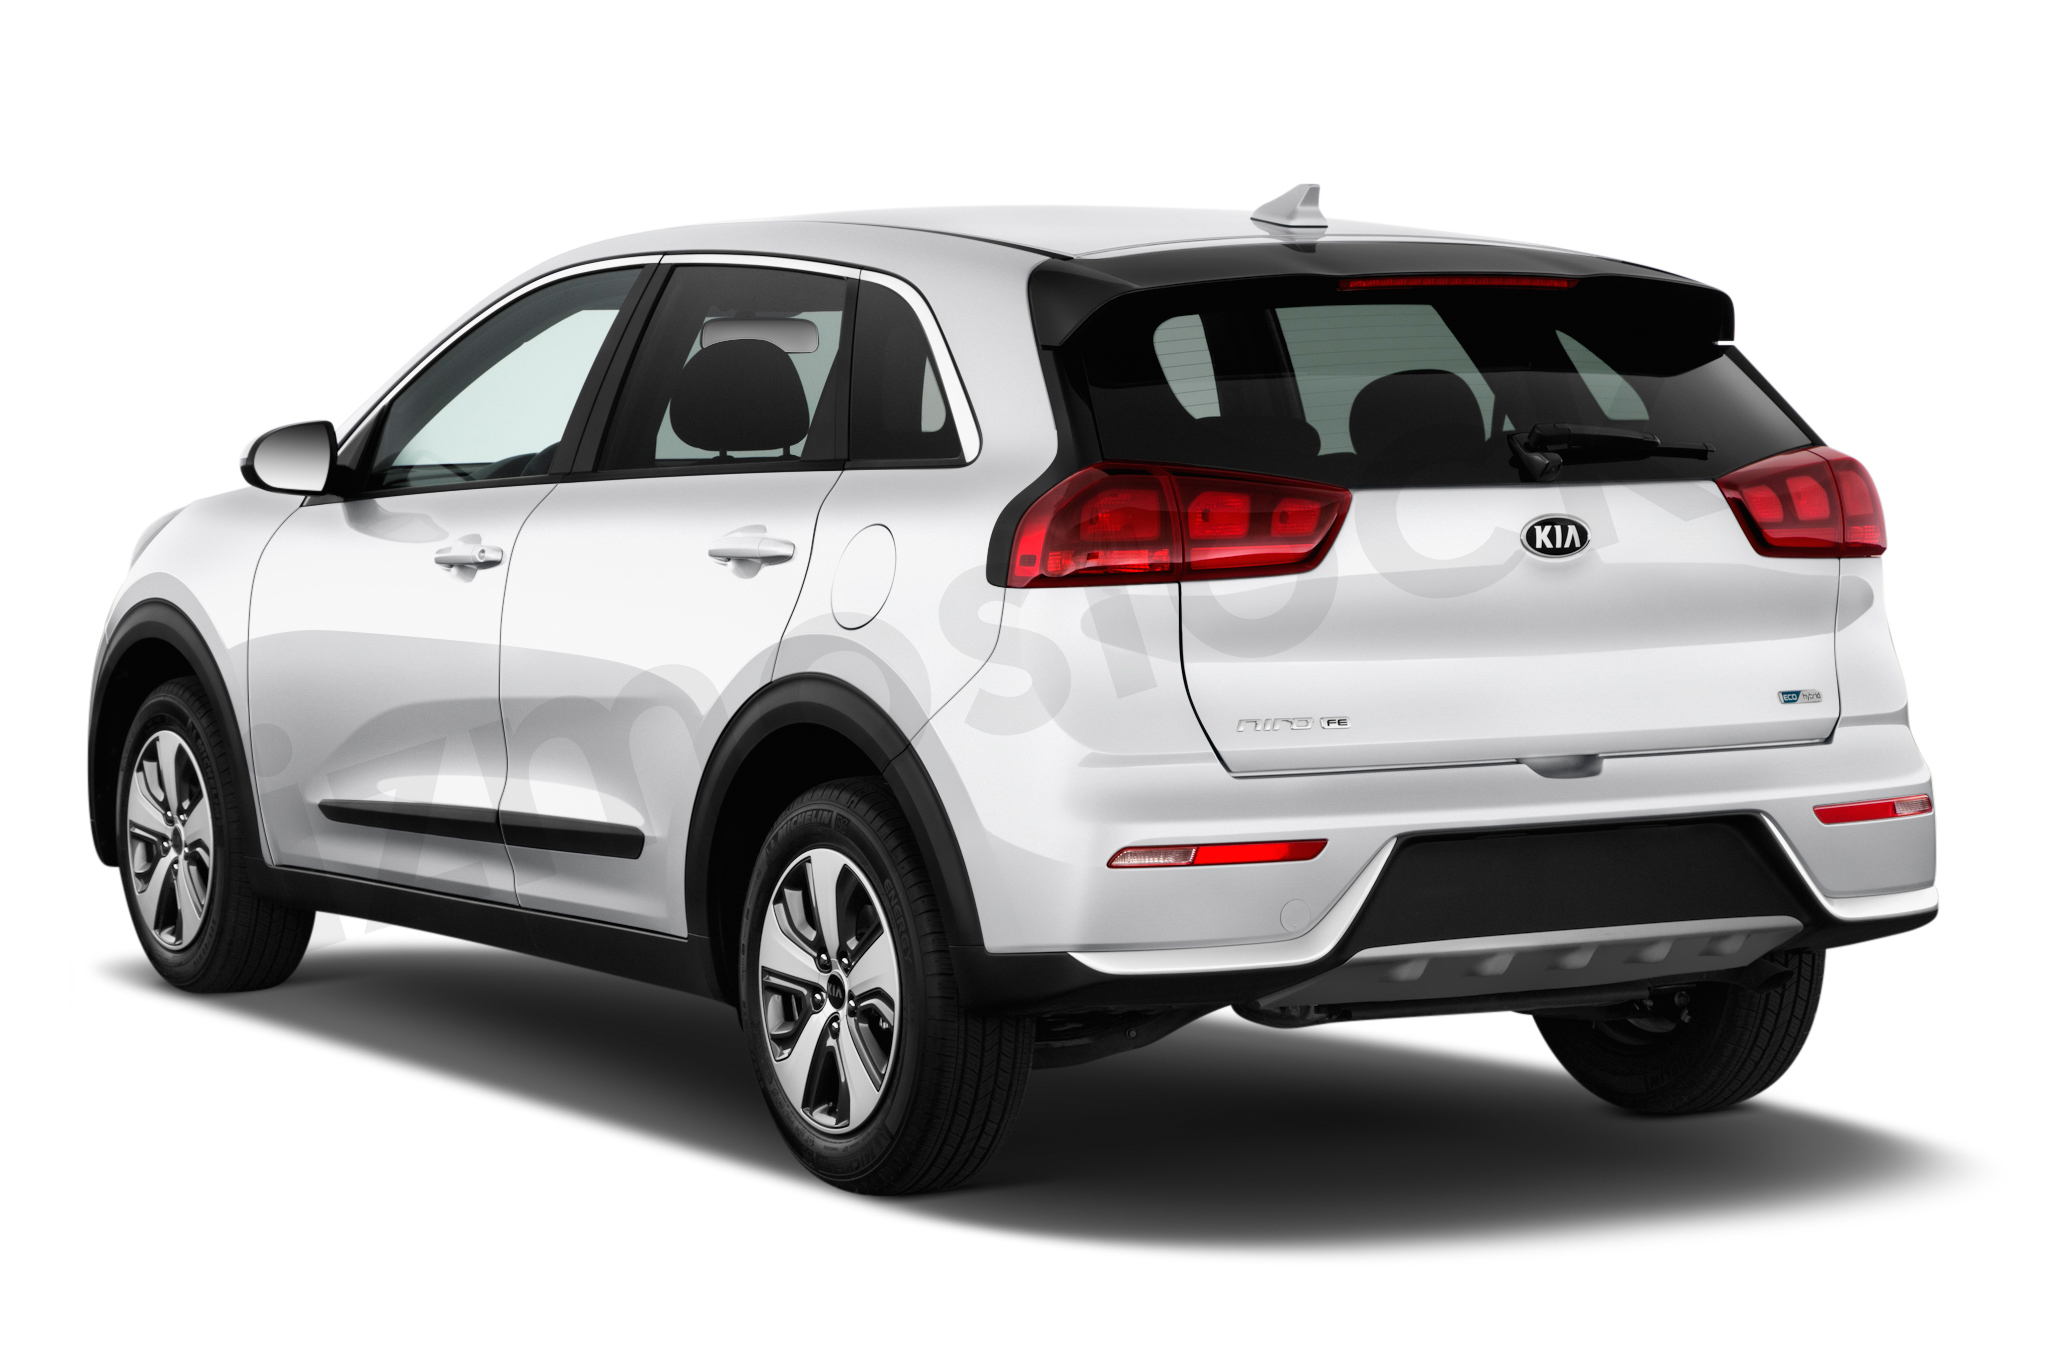 compact crossover hybrid the 2017 kia niro pictures. Black Bedroom Furniture Sets. Home Design Ideas